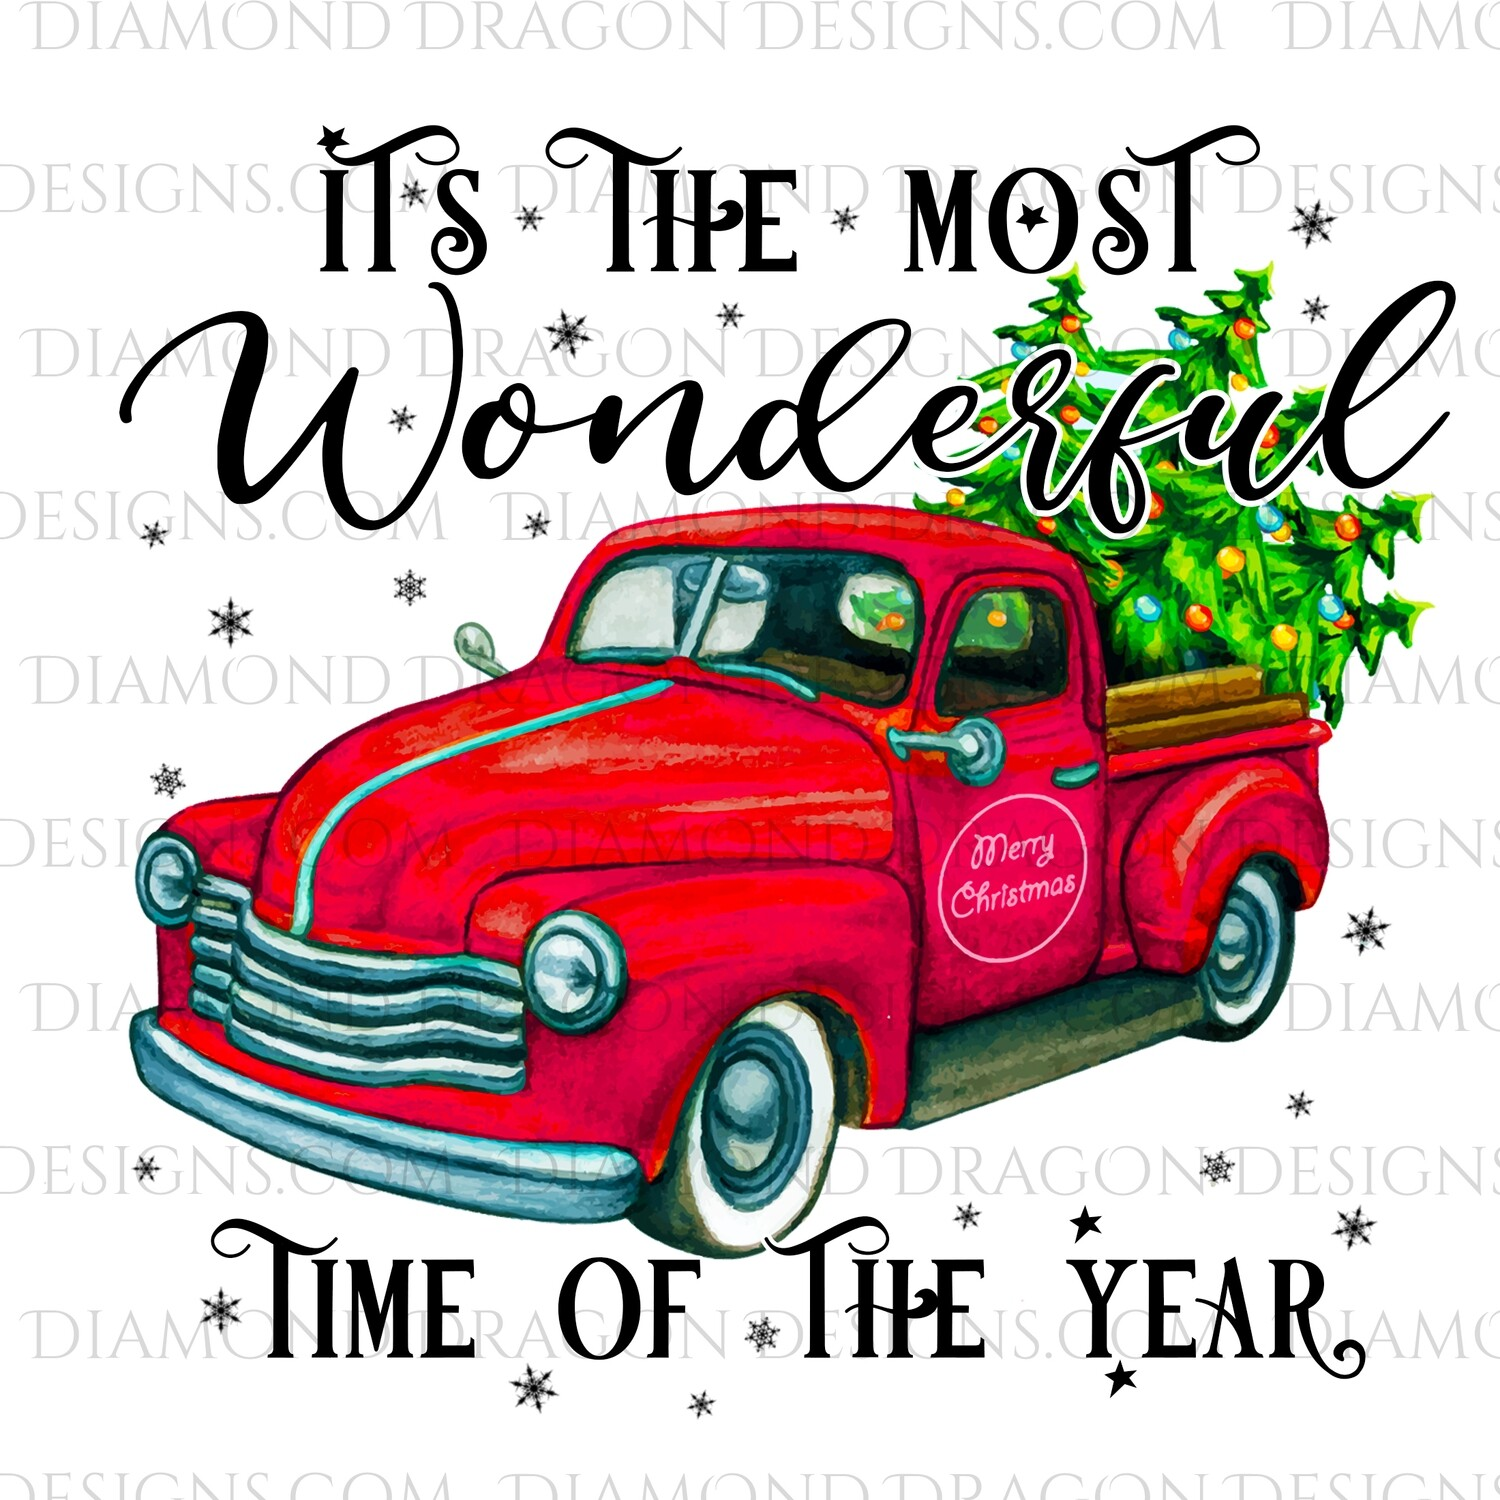 Christmas - Red Truck, Christmas Tree, It's the most wonderful time, Red Vintage Truck 9, Waterslide